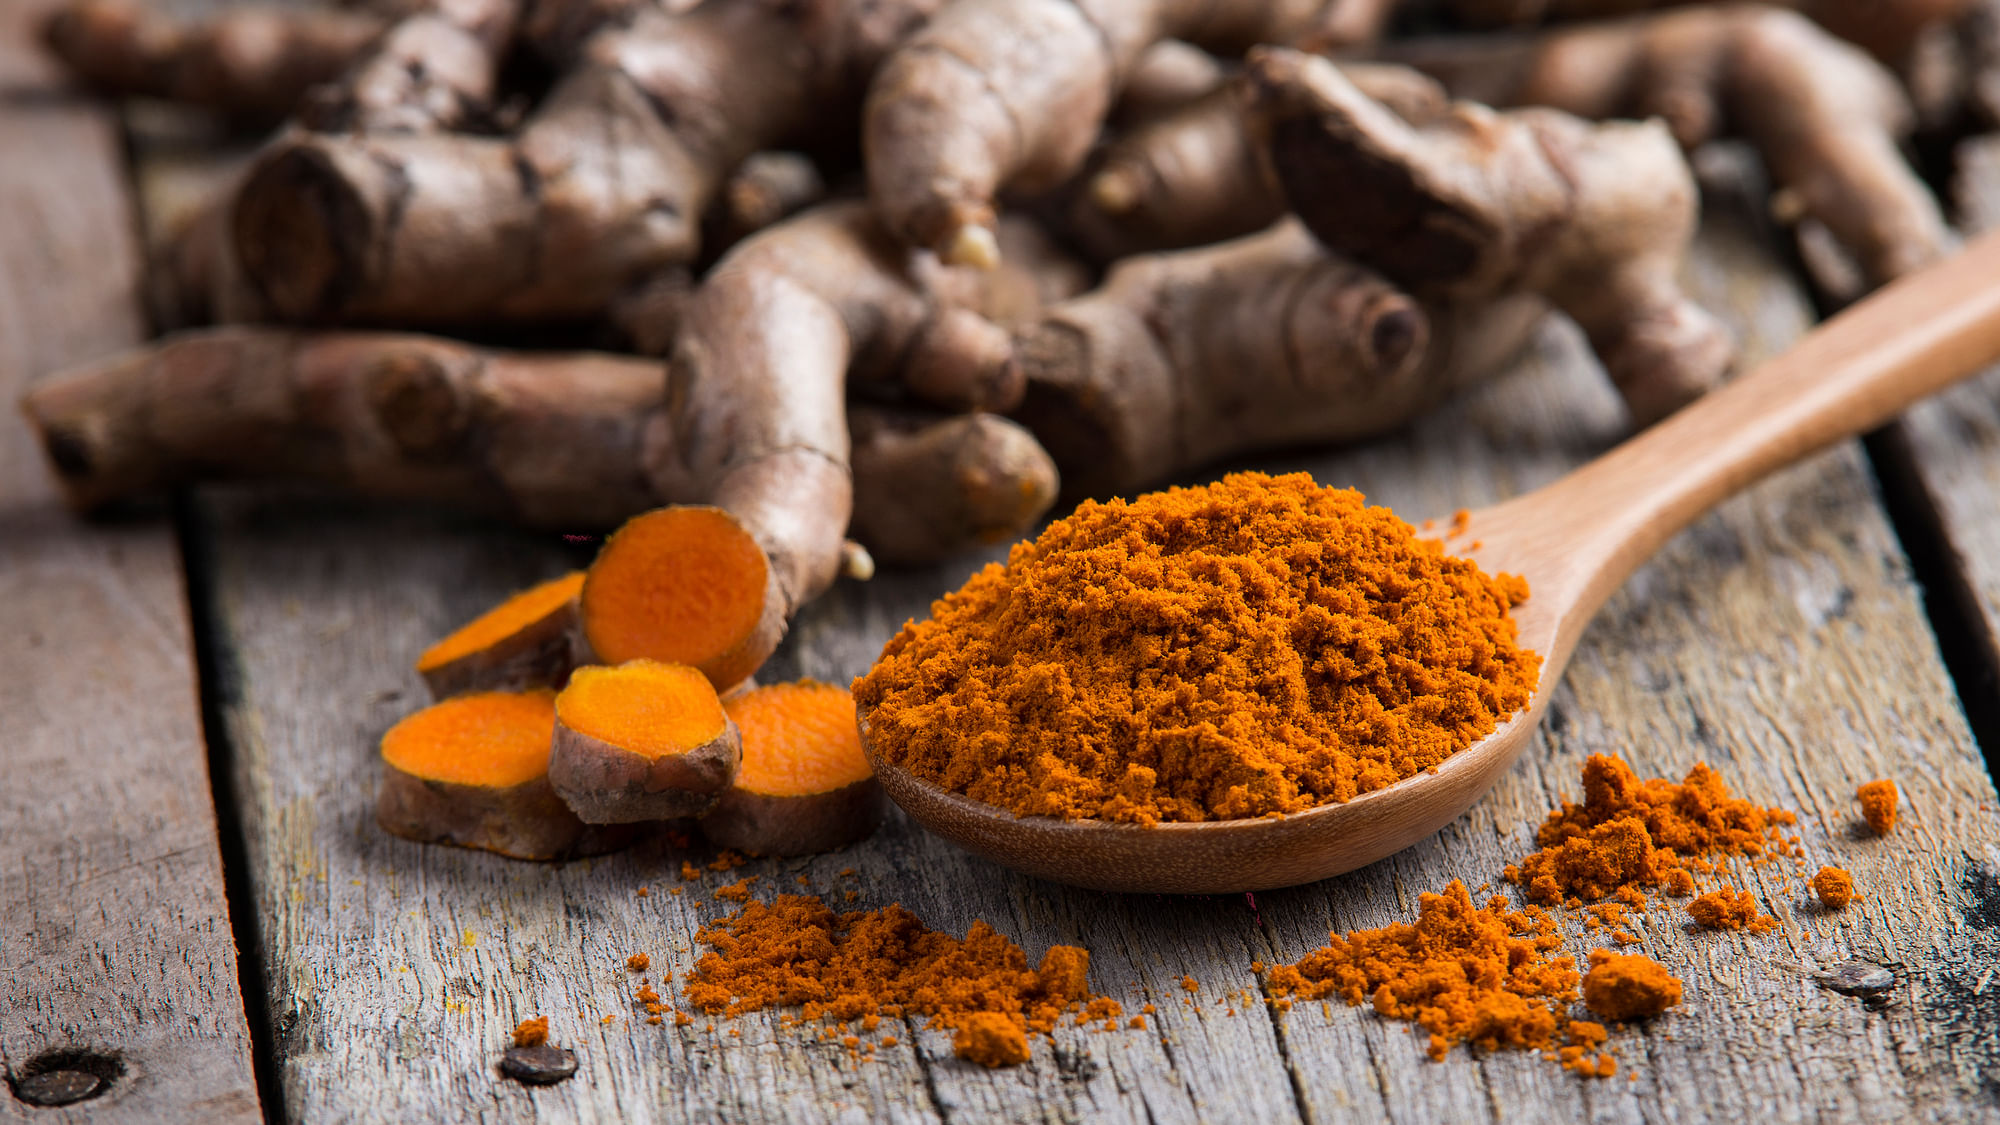 Treating Cancer With Turmeric? An Indian Institute Gets US Patent